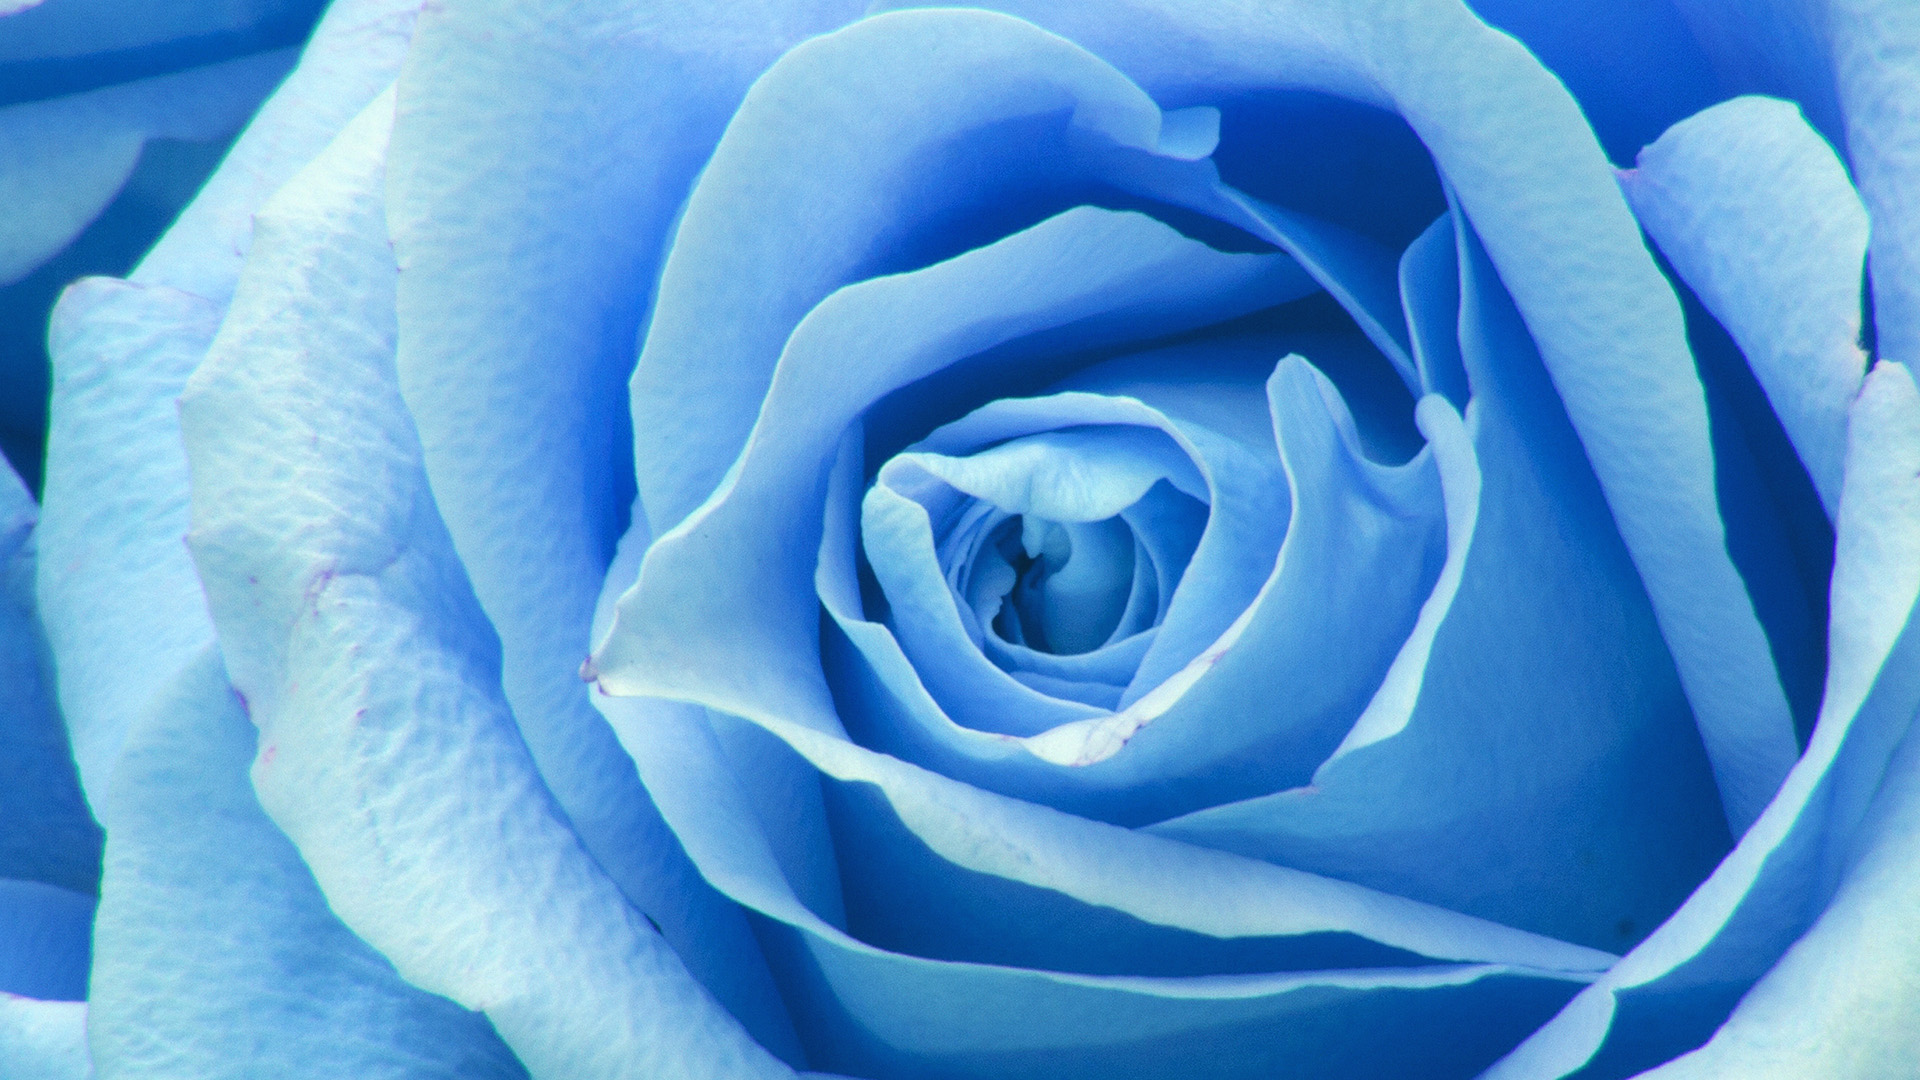 Fall Texture Wallpaper Ne44 Flower Blue Rose Zoom Love Wallpaper